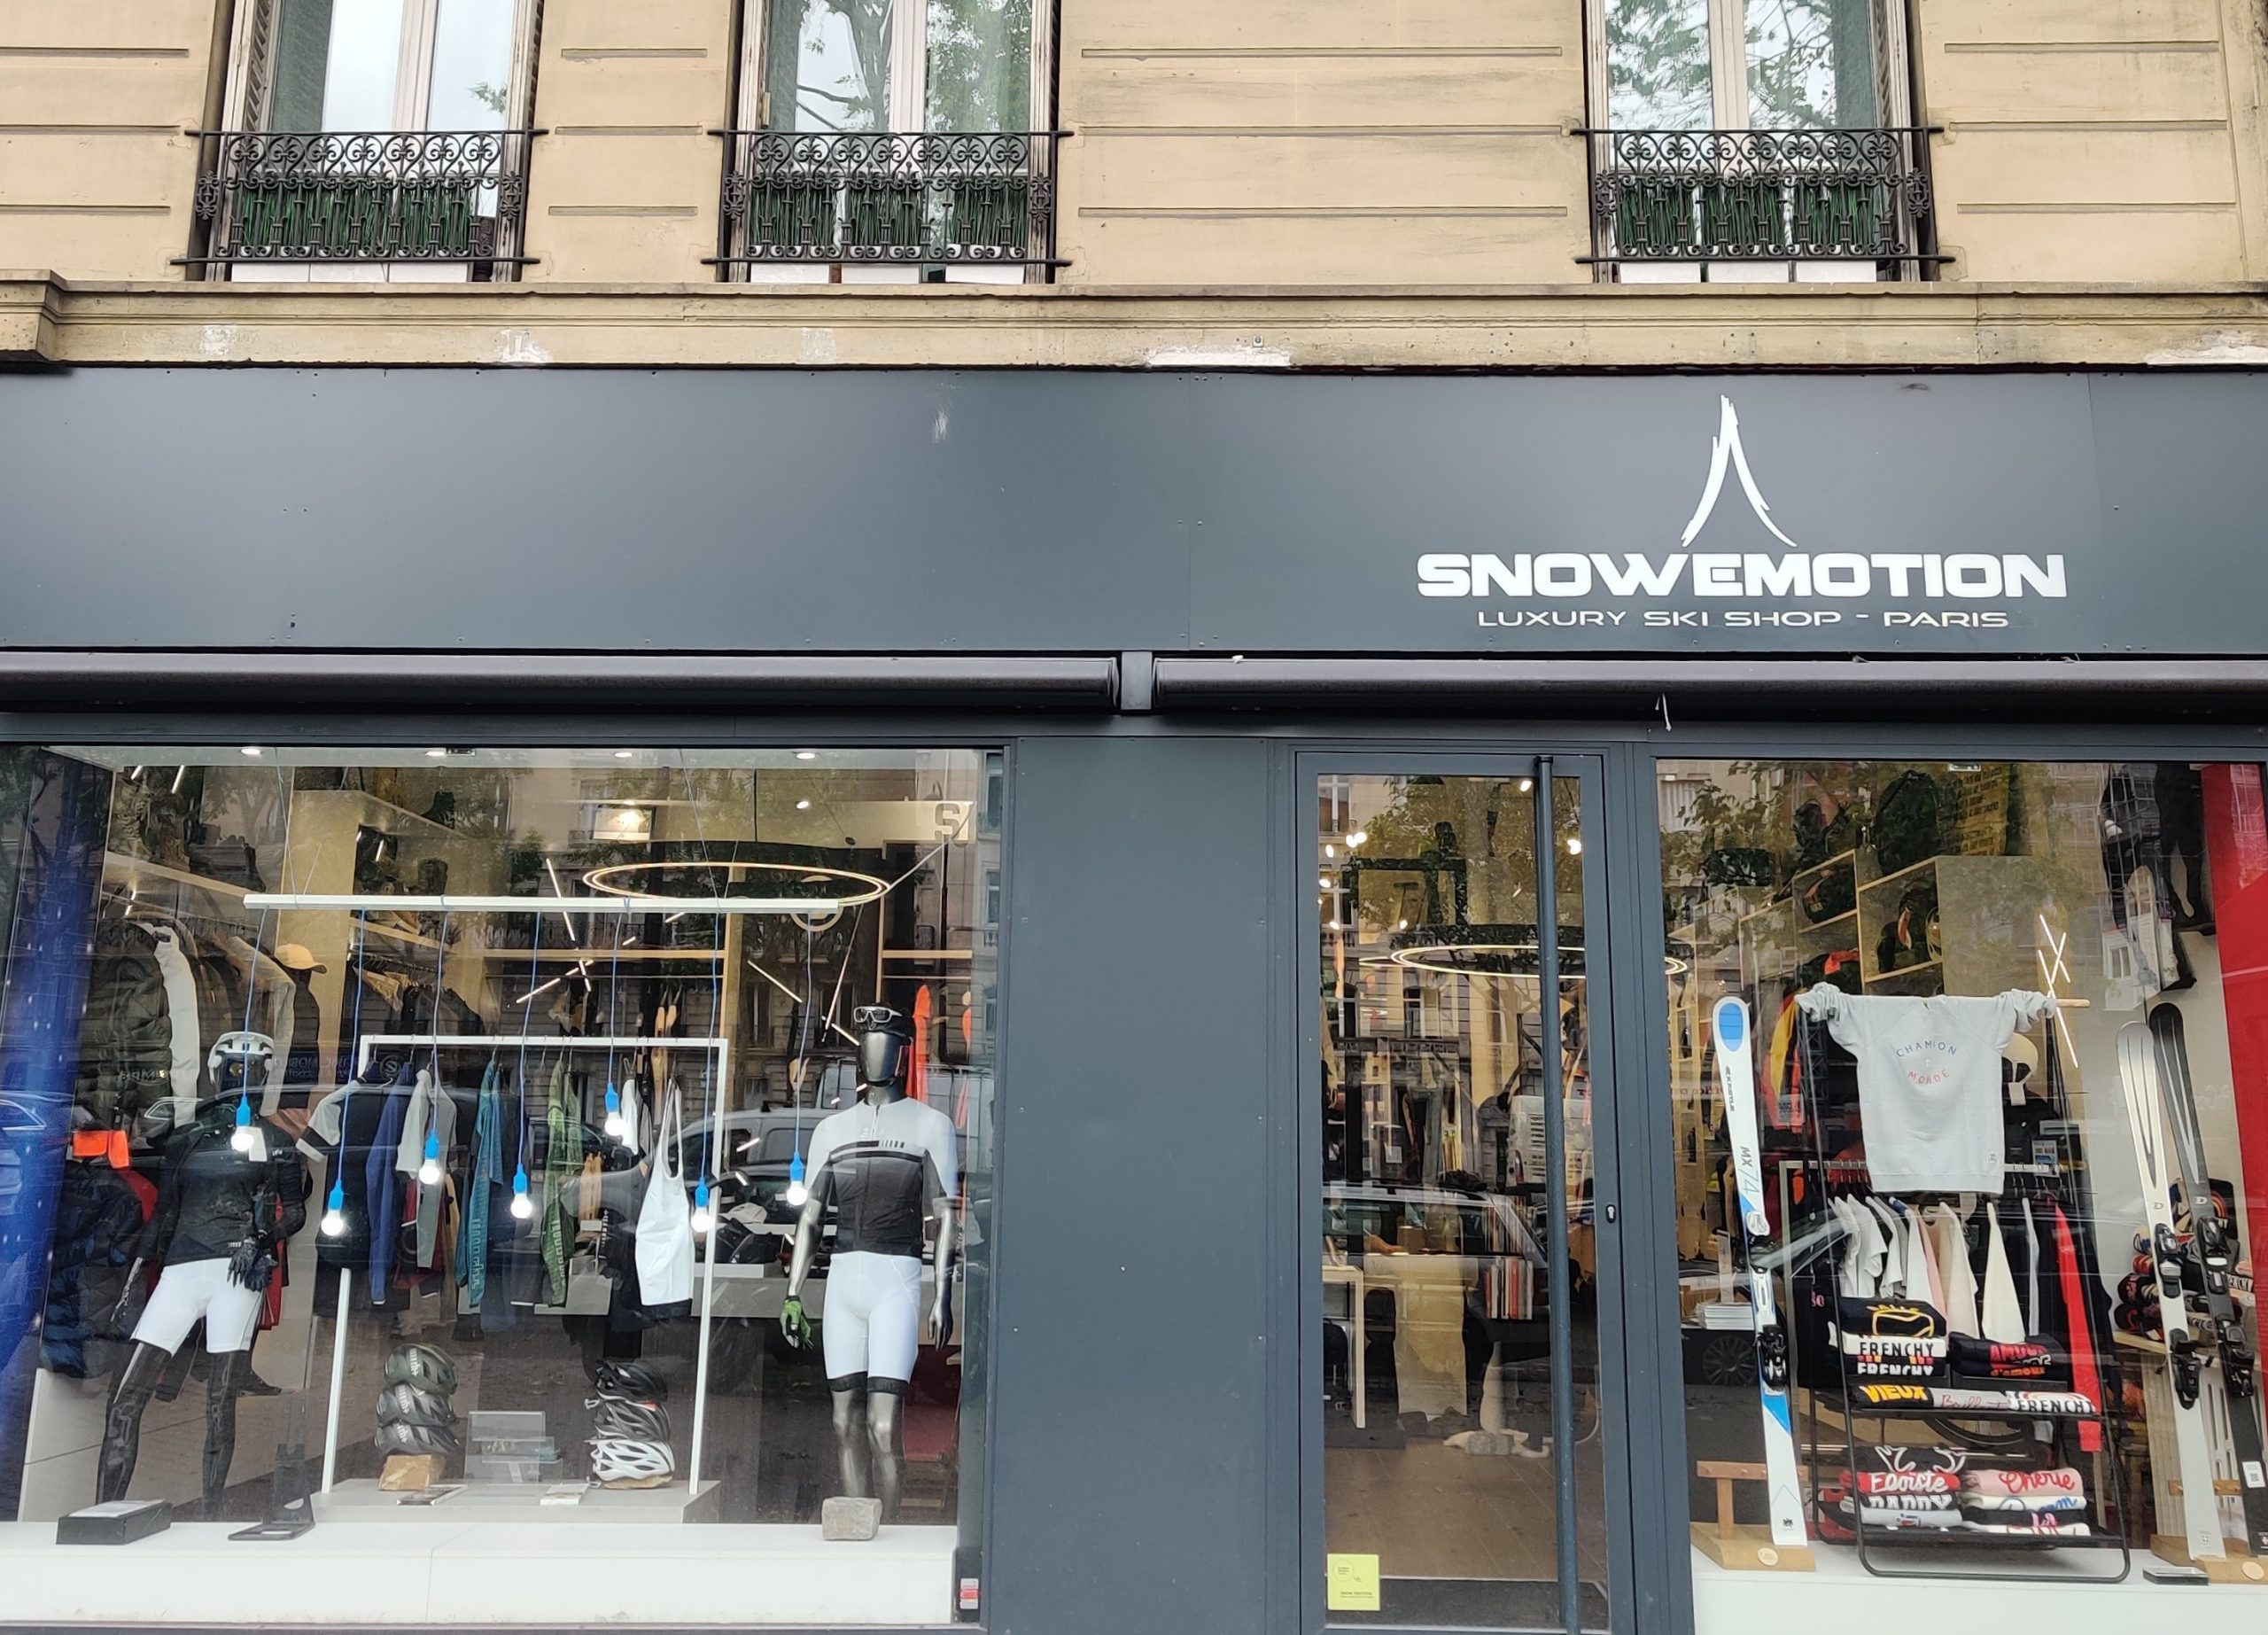 Reopening of the Snow Emotion store